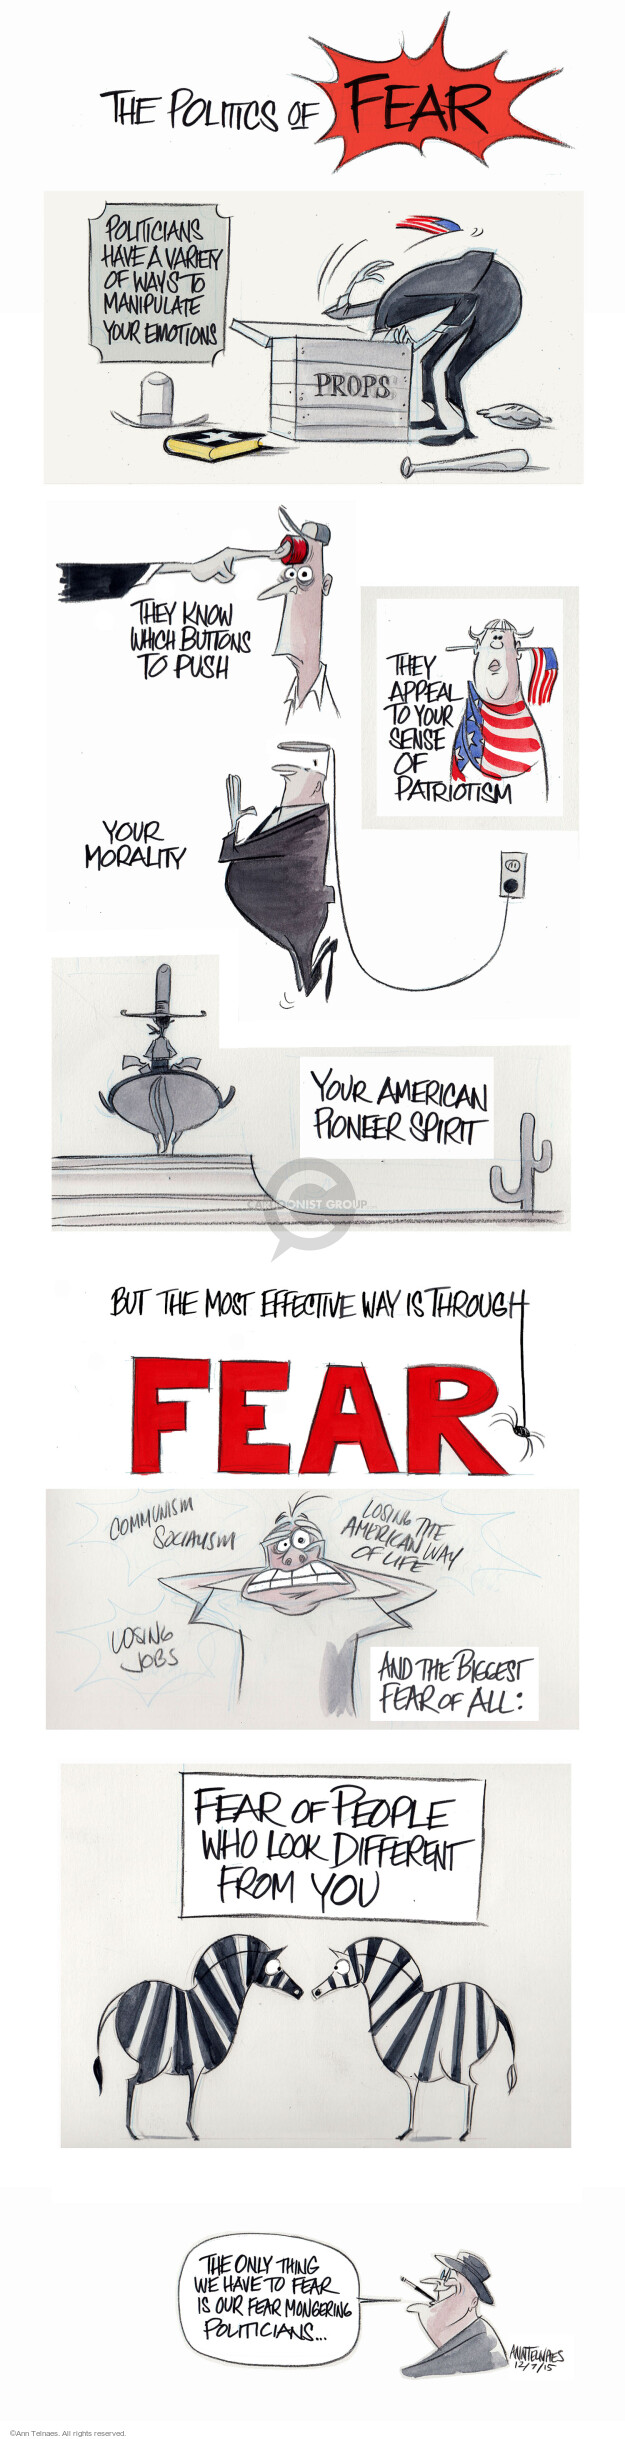 Cartoonist Ann Telnaes  Ann Telnaes' Editorial Cartoons 2015-12-09 sense